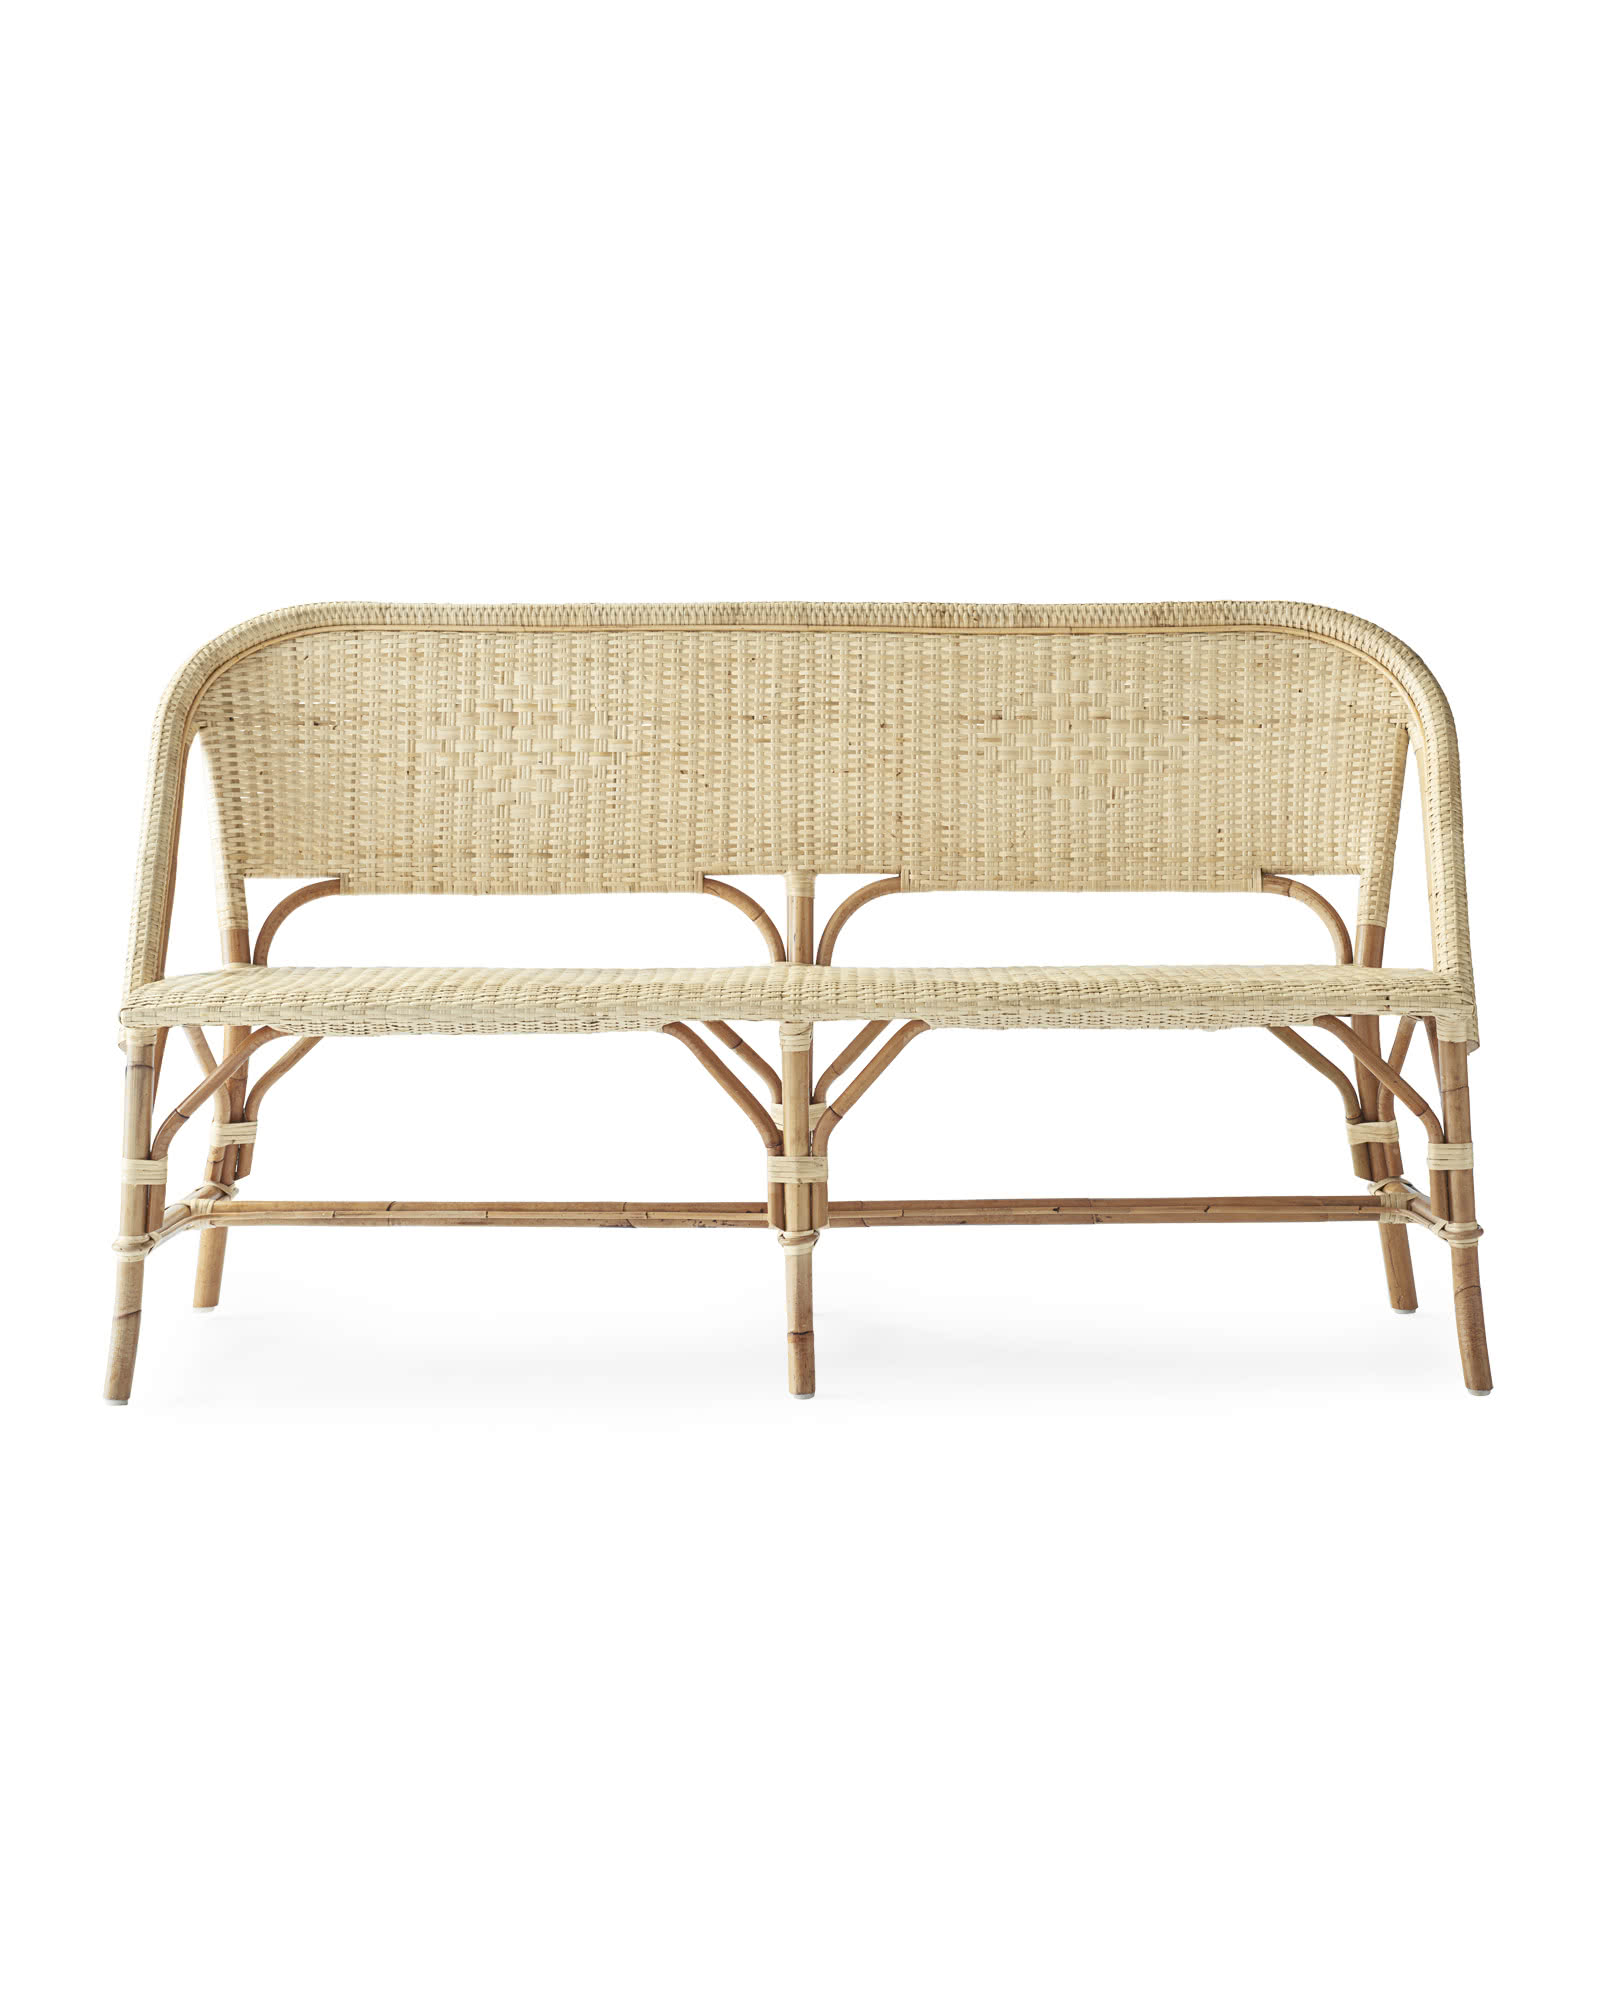 Riviera Bench - Natural